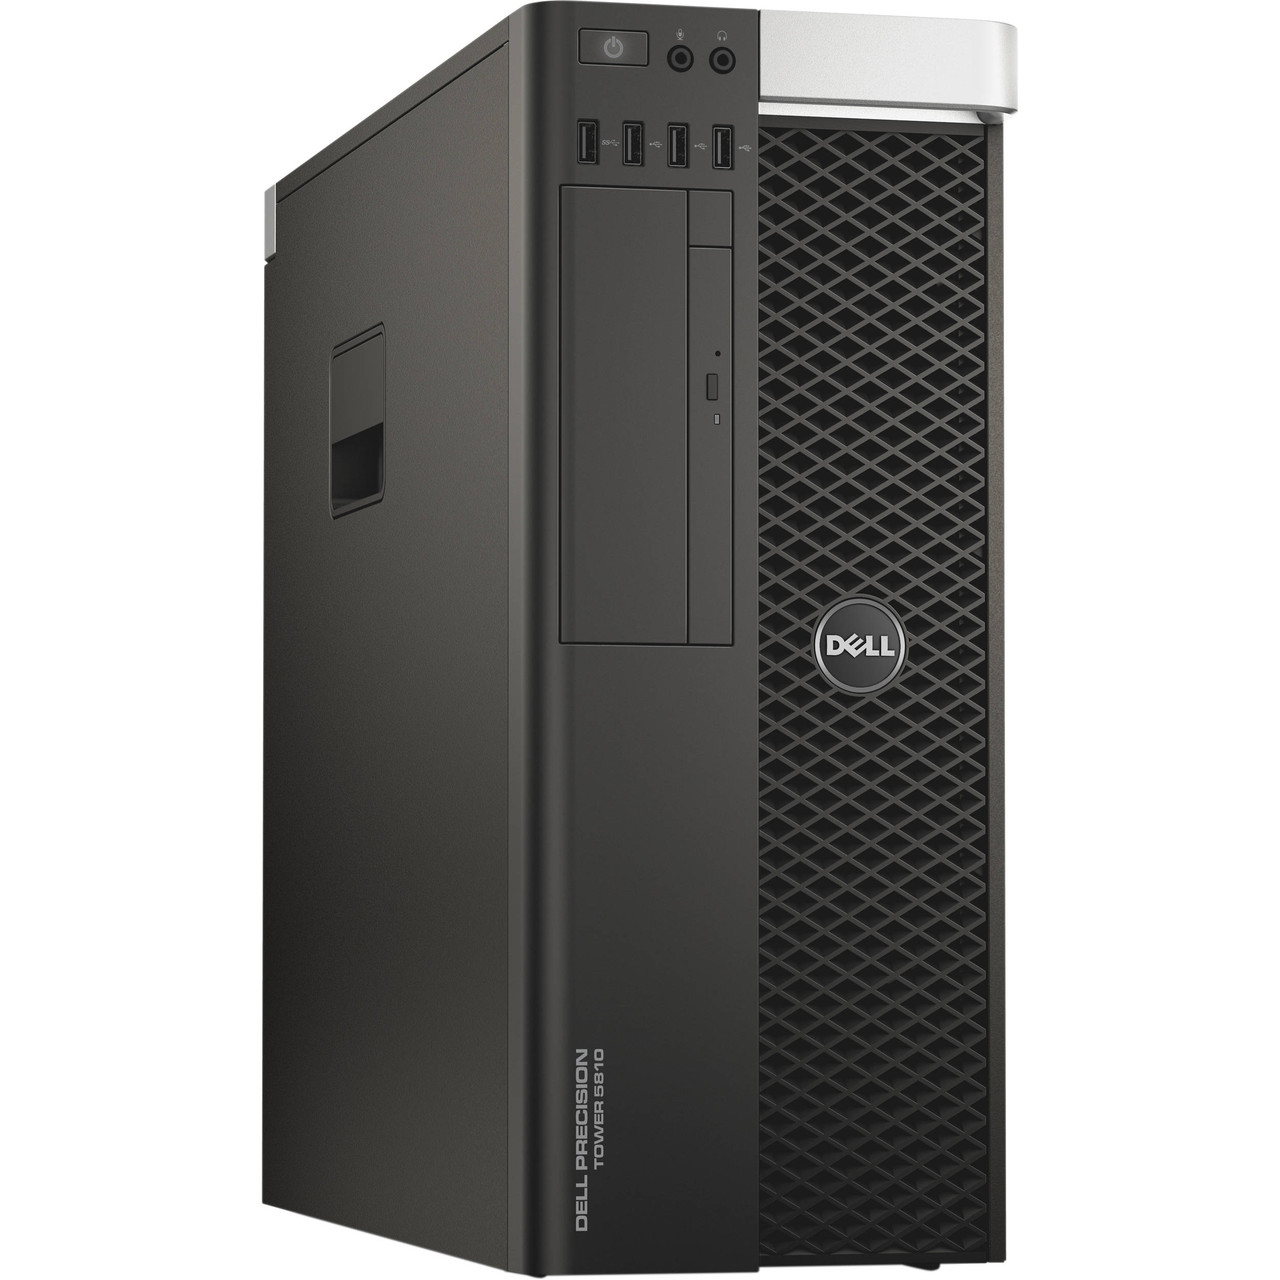 Dell Precision T5810 Tower Quad Core Intel Xeon